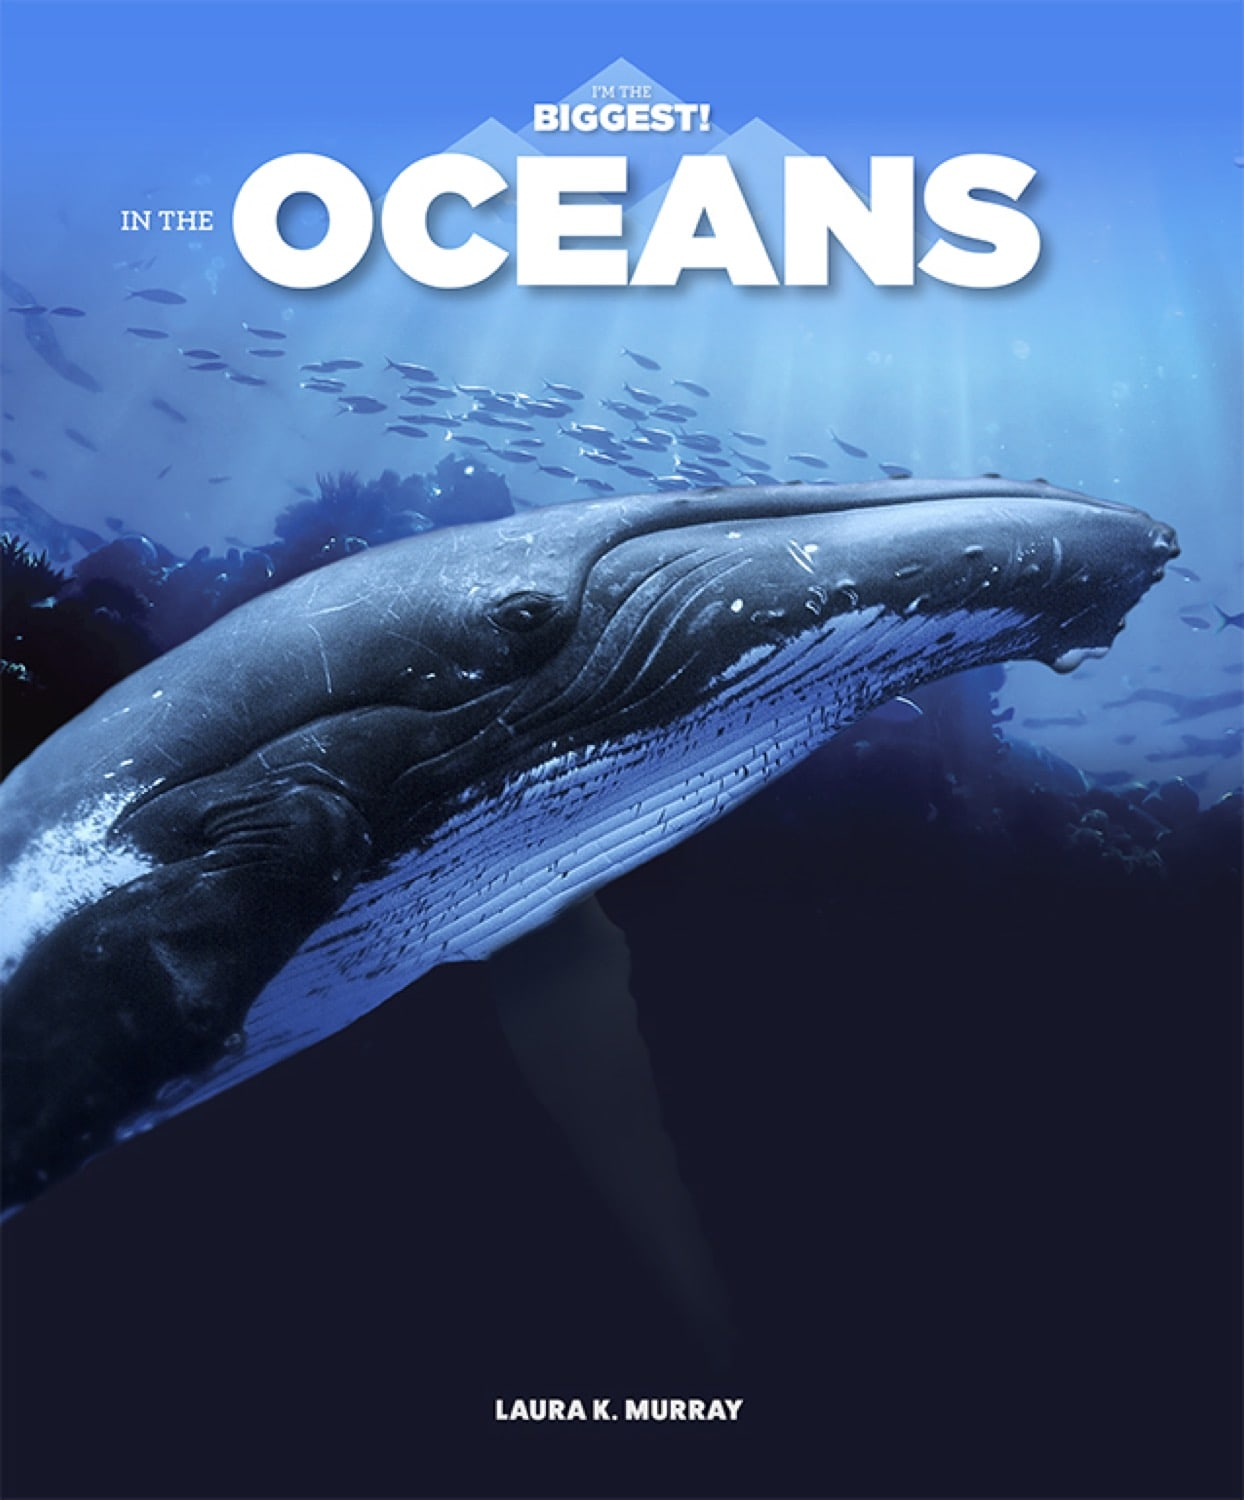 I'm the Biggest!: In the Oceans